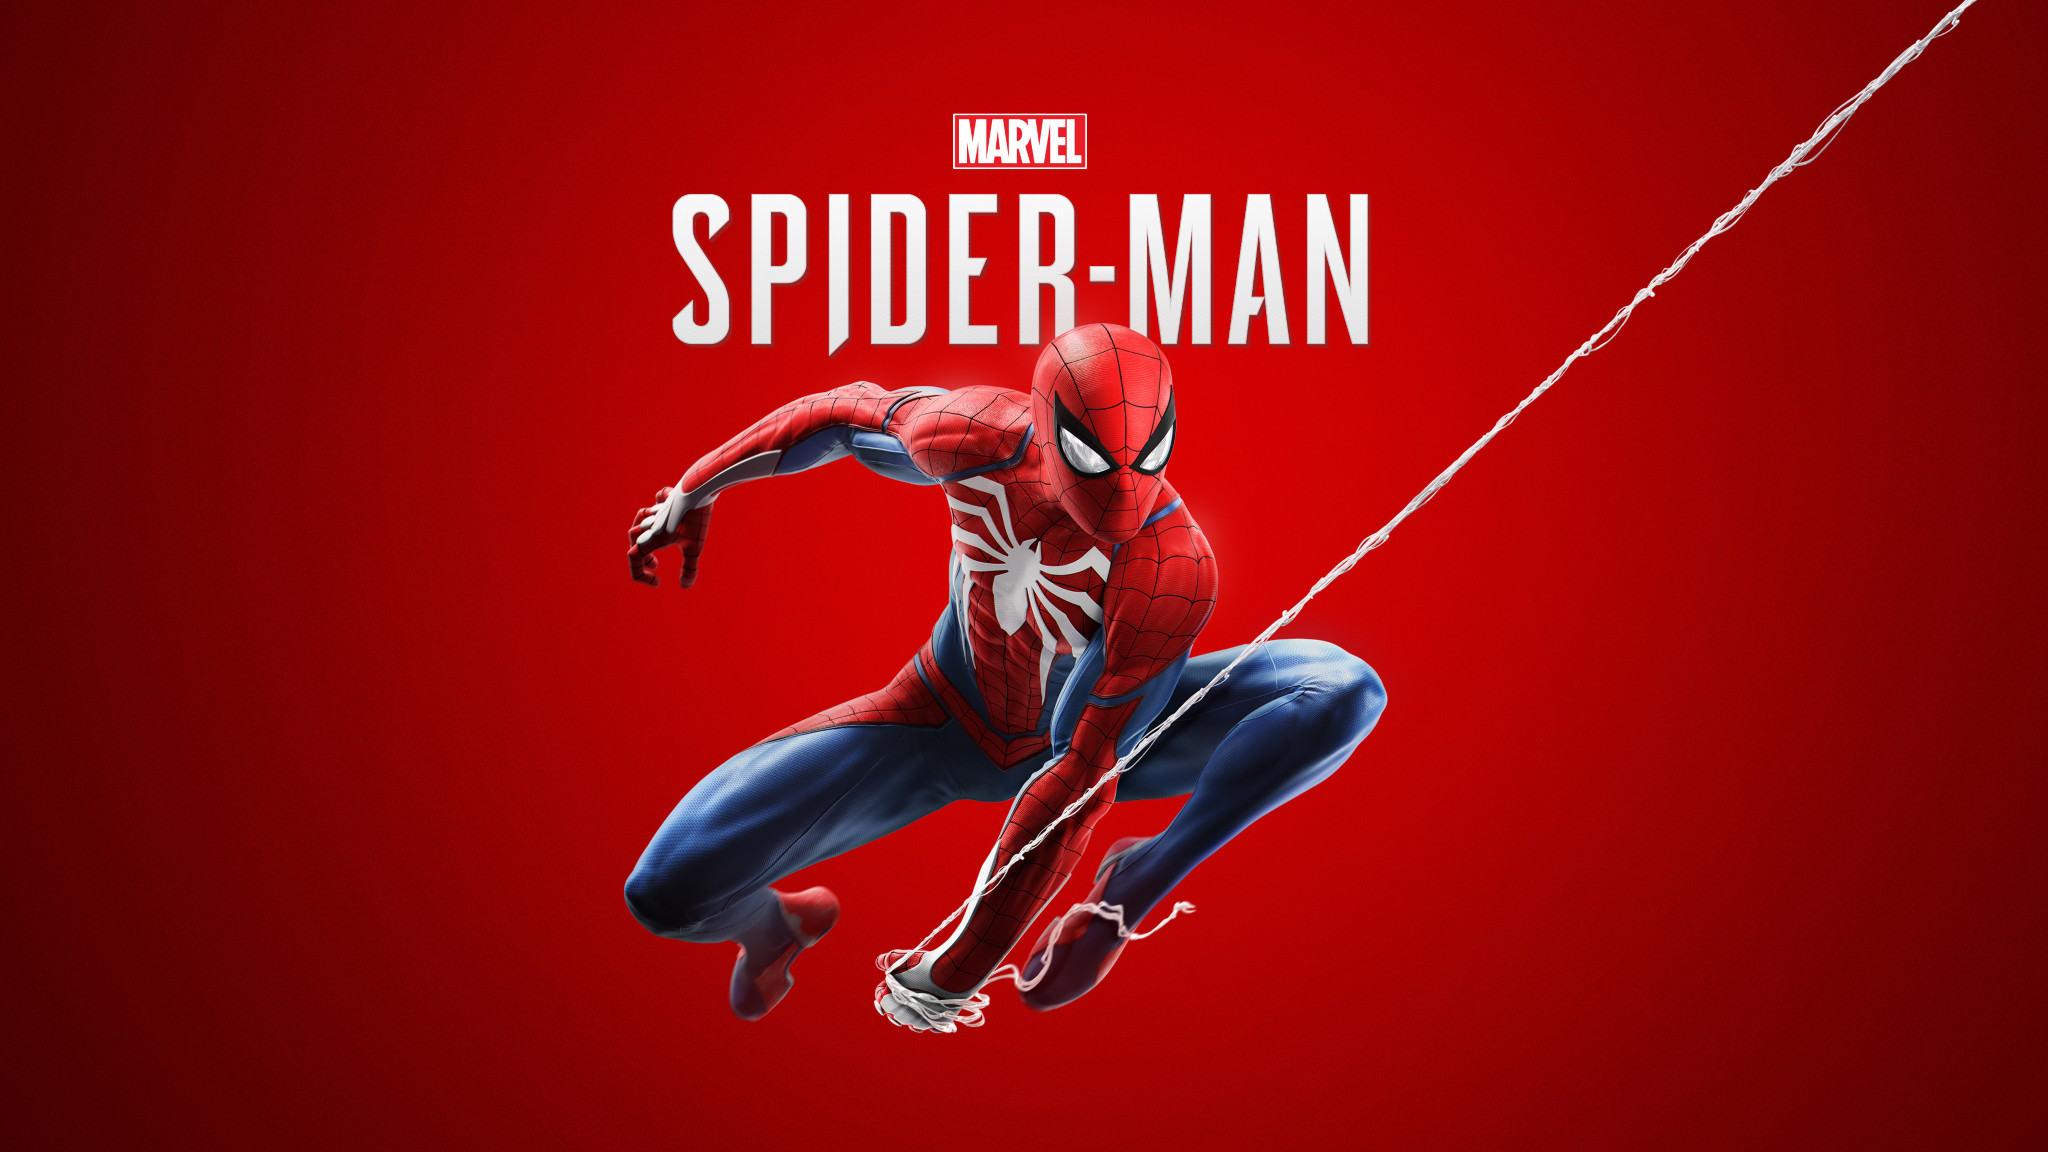 2048x1152 Spider Man 2018 PS4 Game 2048x1152 Resolution Wallpaper 2048x1152